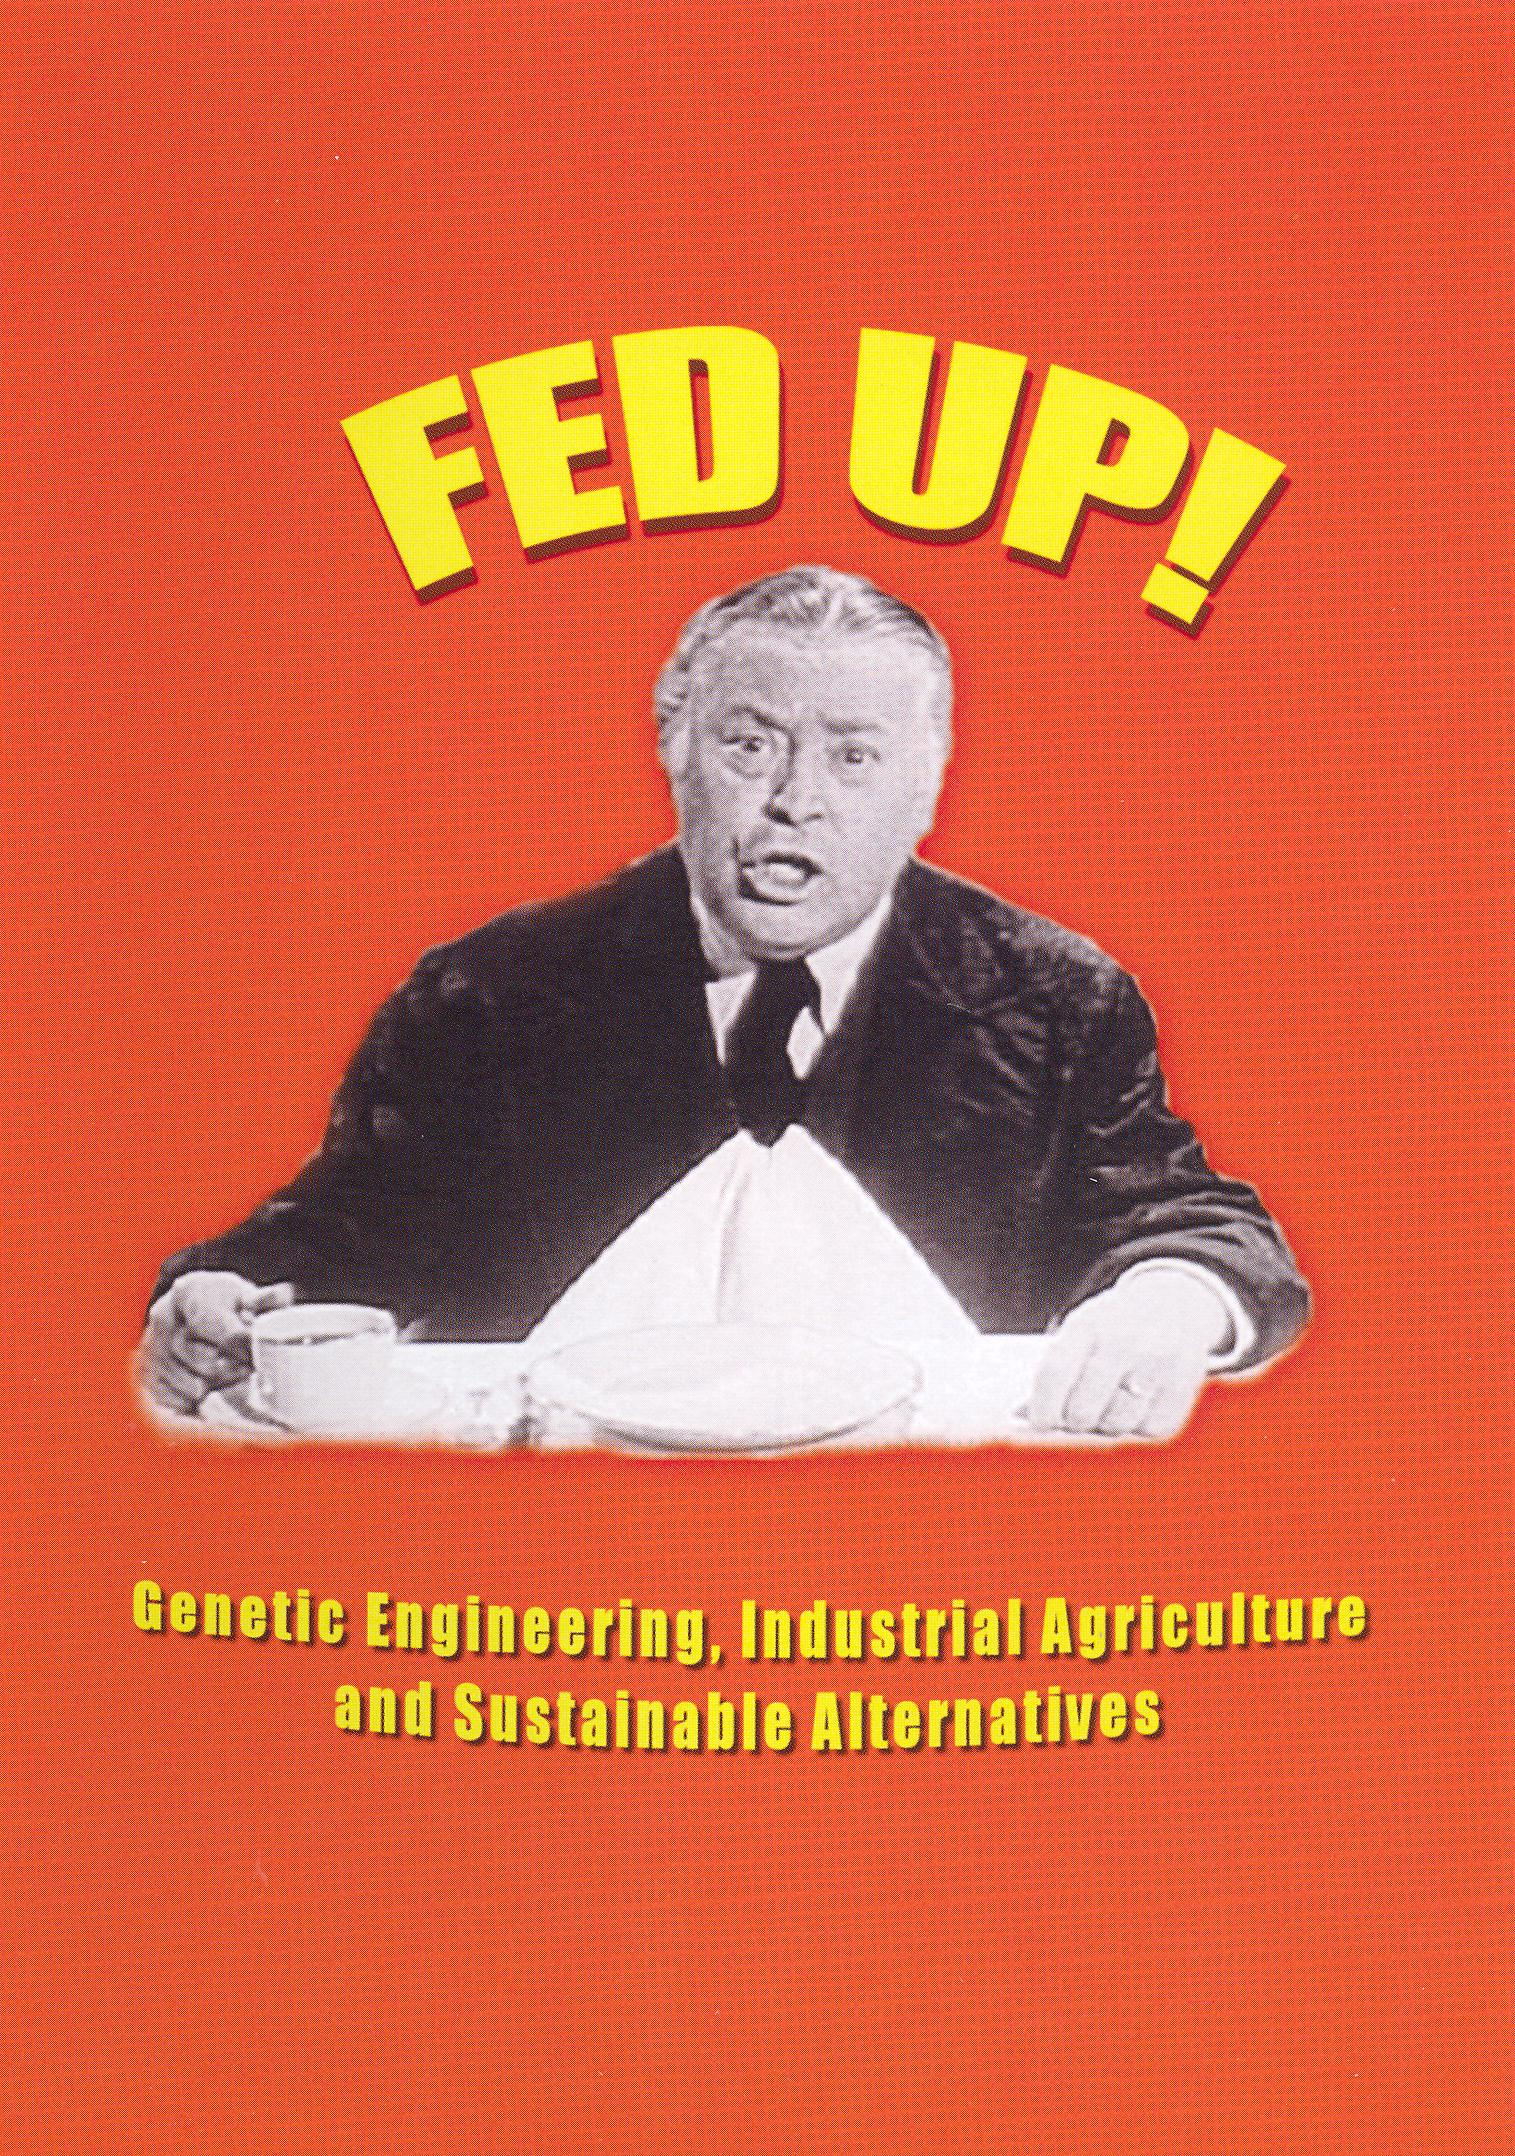 Fed Up! Genetic Engineering, Industrial Agriculture and Sustainable Alternatives (2002)